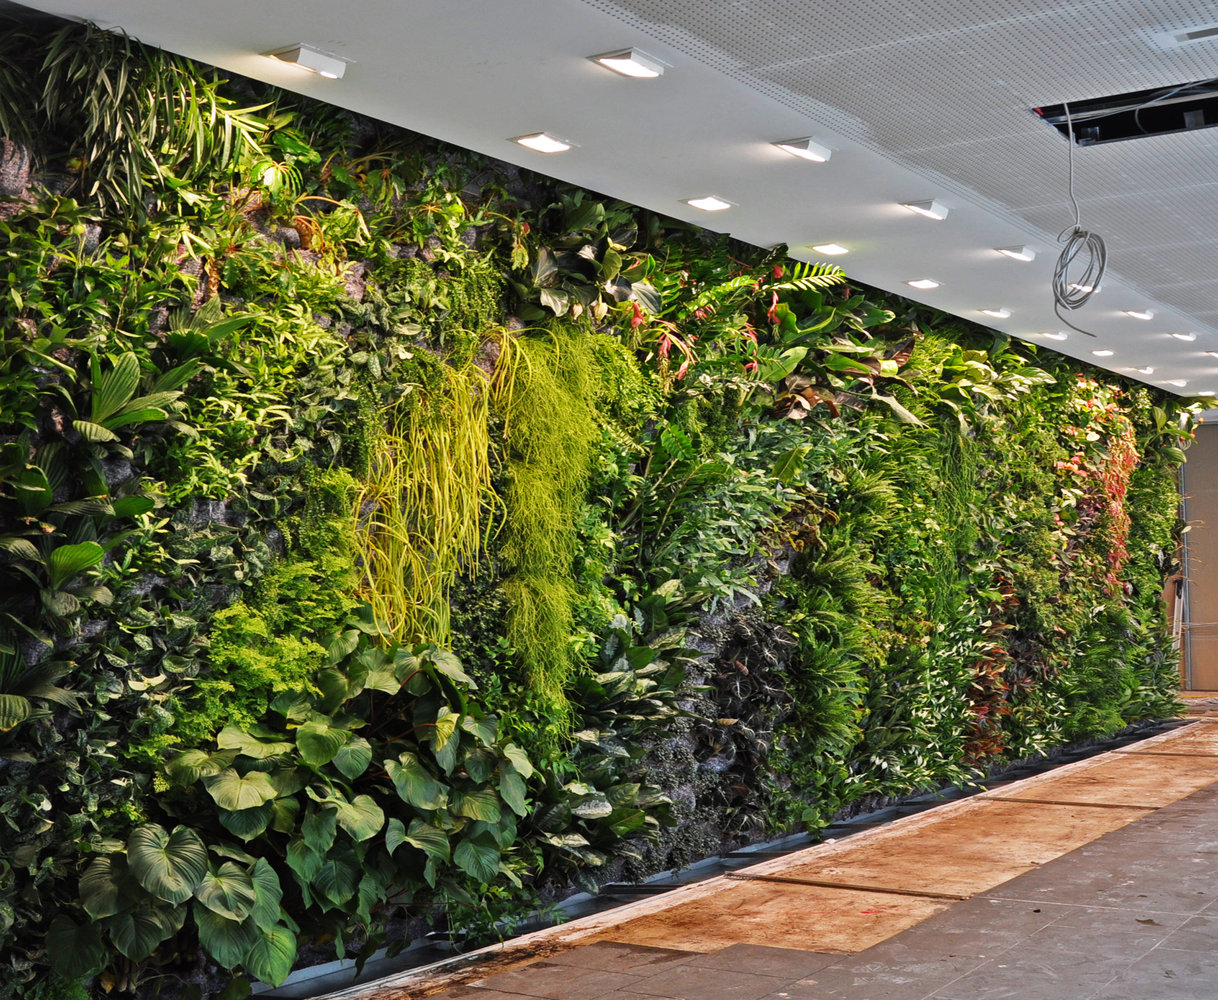 Fronius headquarters wels austria vertical garden for Indoor gardening videos